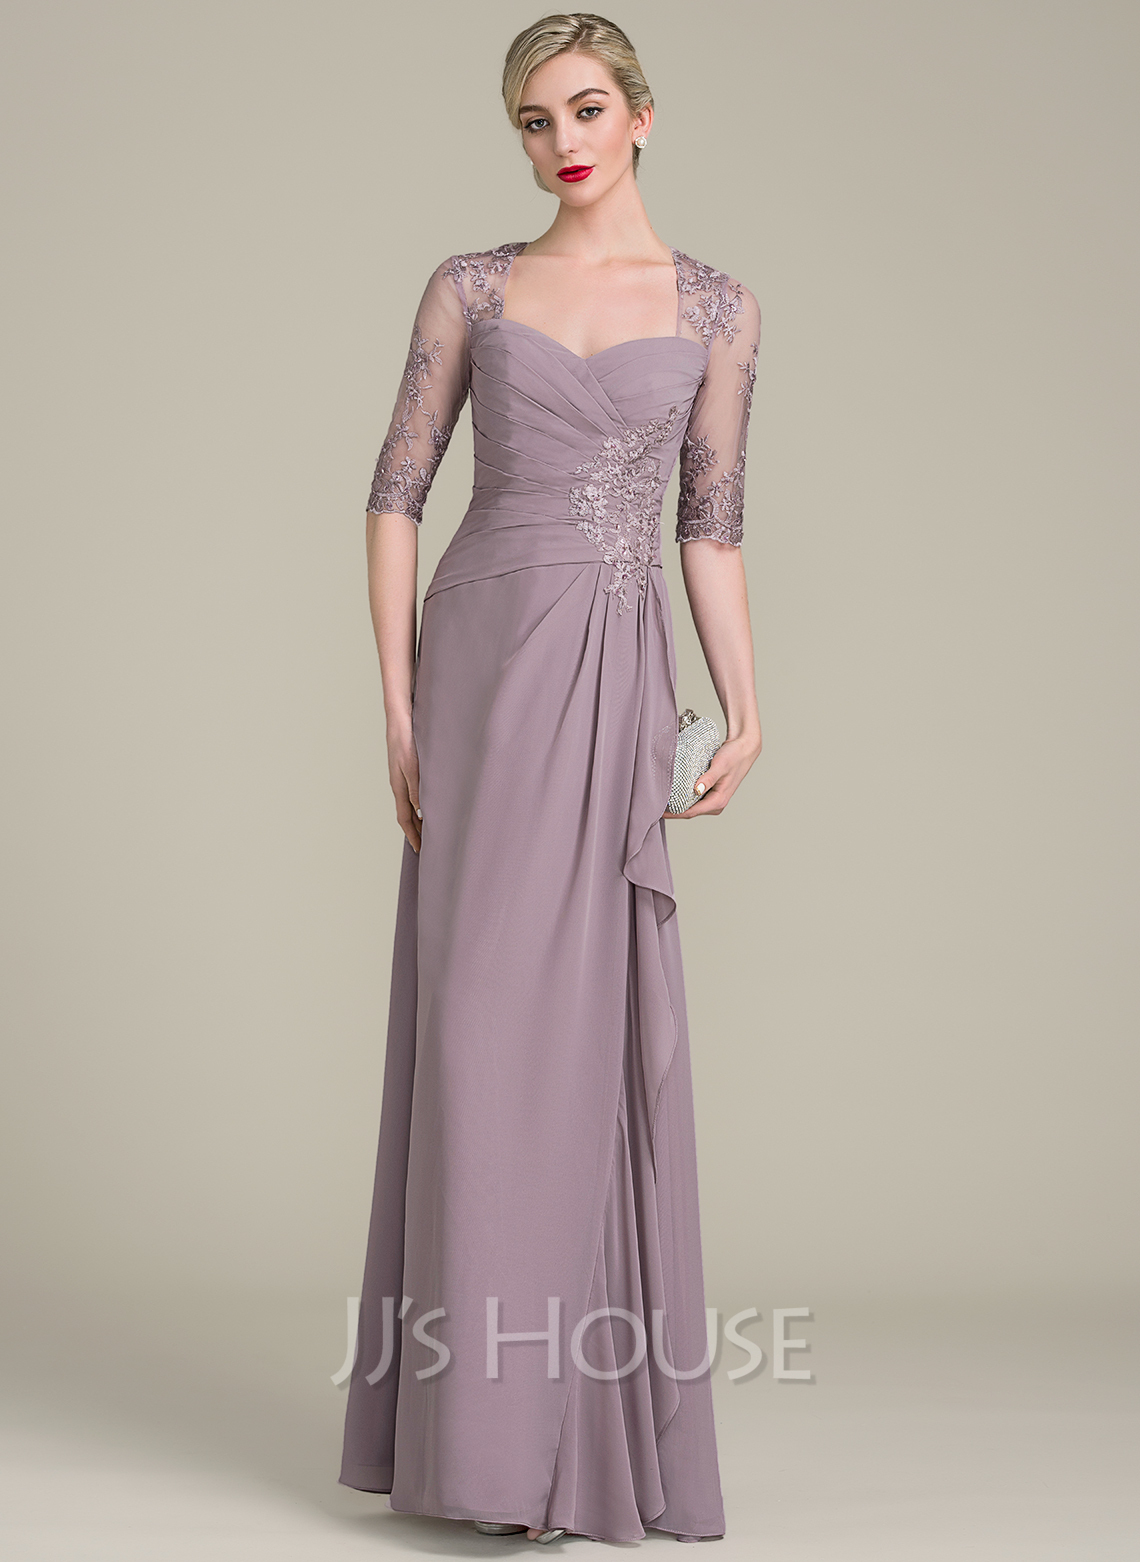 A-Line/Princess Sweetheart Floor-Length Chiffon Evening Dress With Beading Sequins Cascading Ruffles